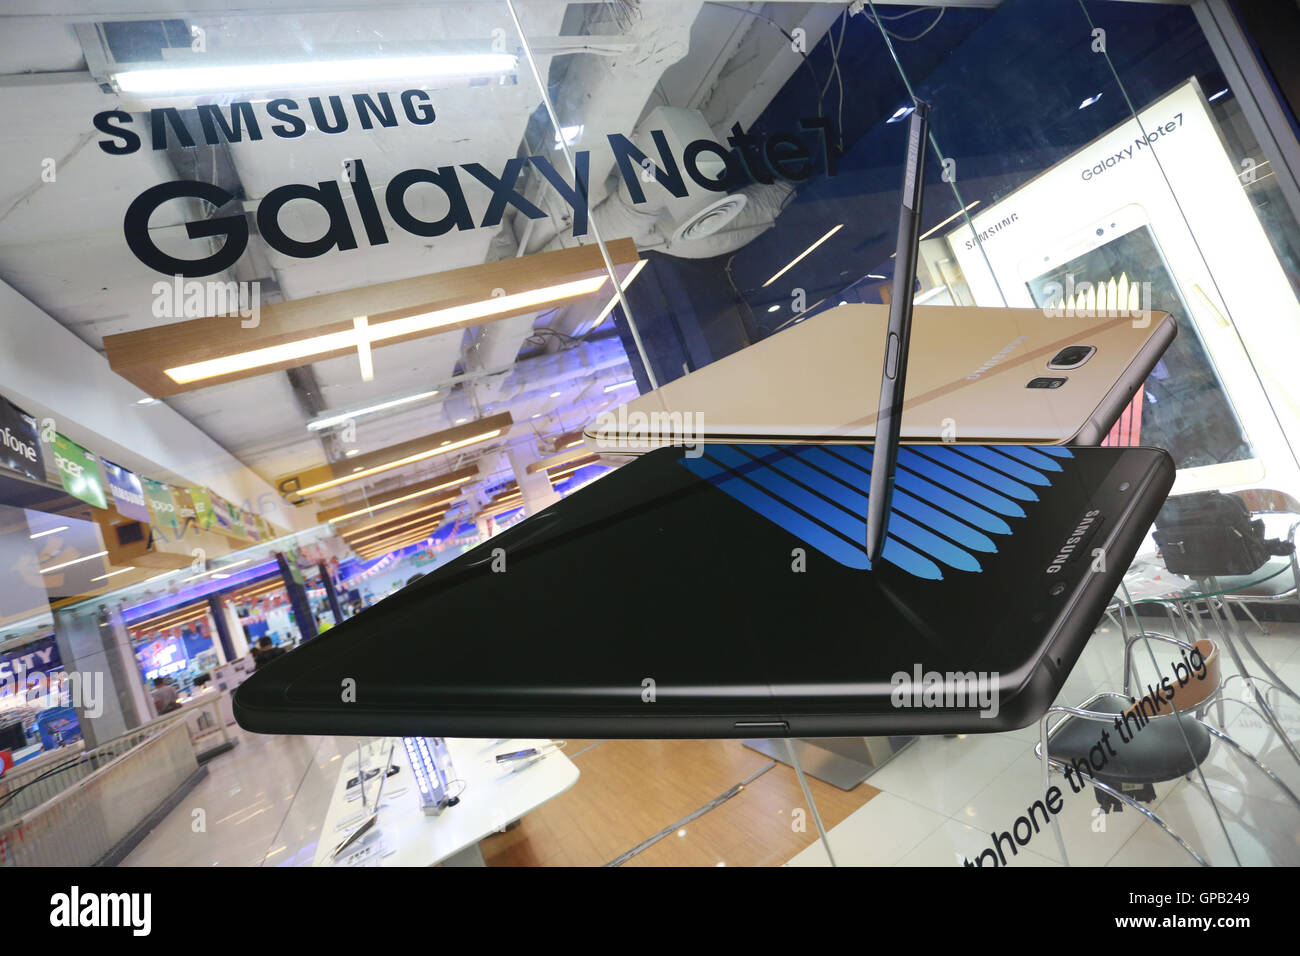 Samsung Electronic Co , Ltd in Thailand announced Samsung